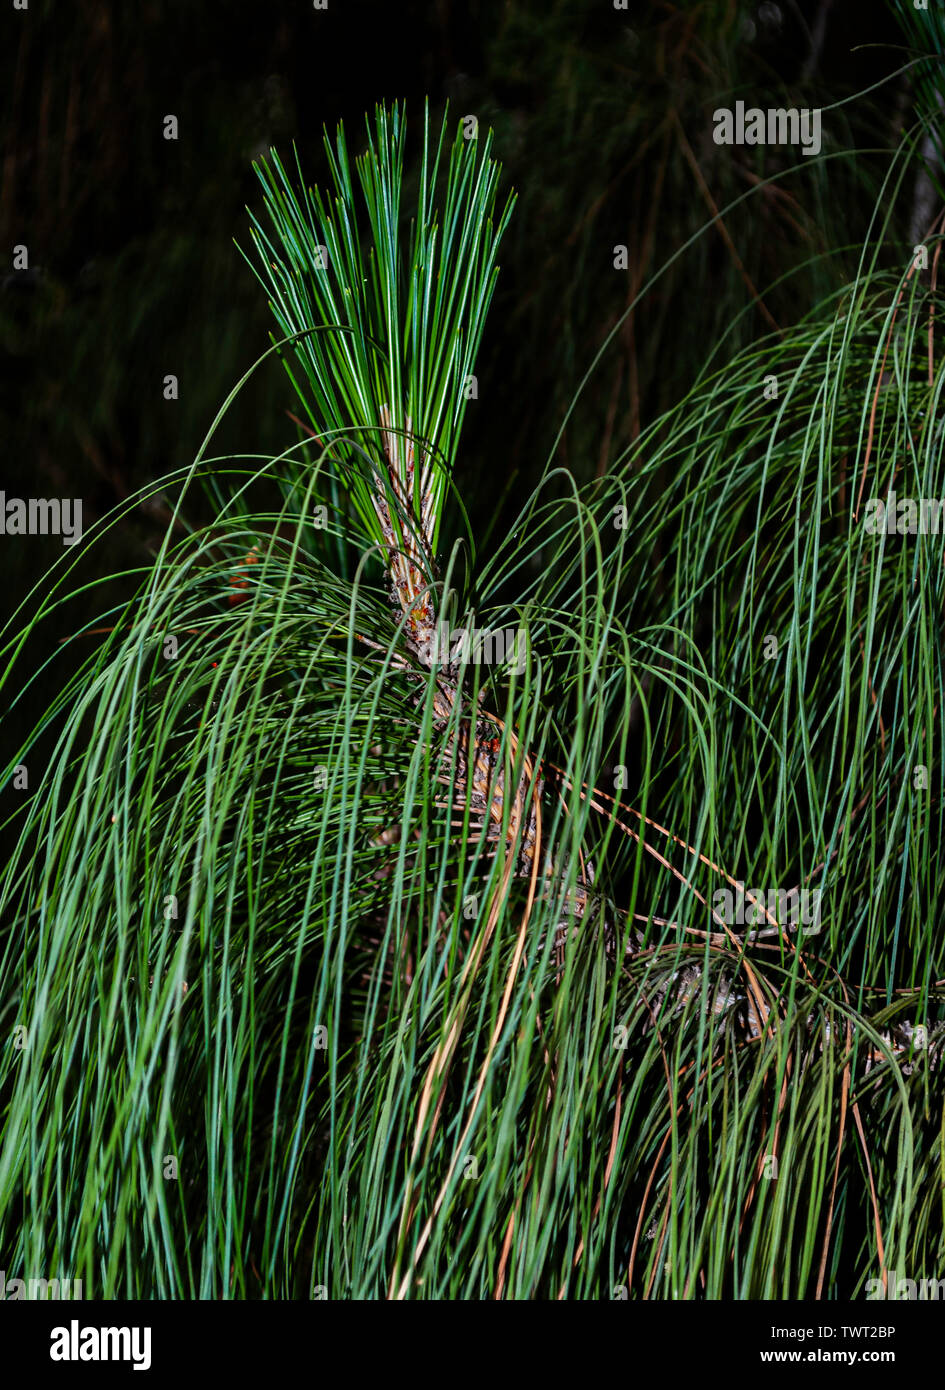 closeup of the end of a branch of longleaf pine showing new growth and long gracefully drooping needles on a nearly black background Stock Photo